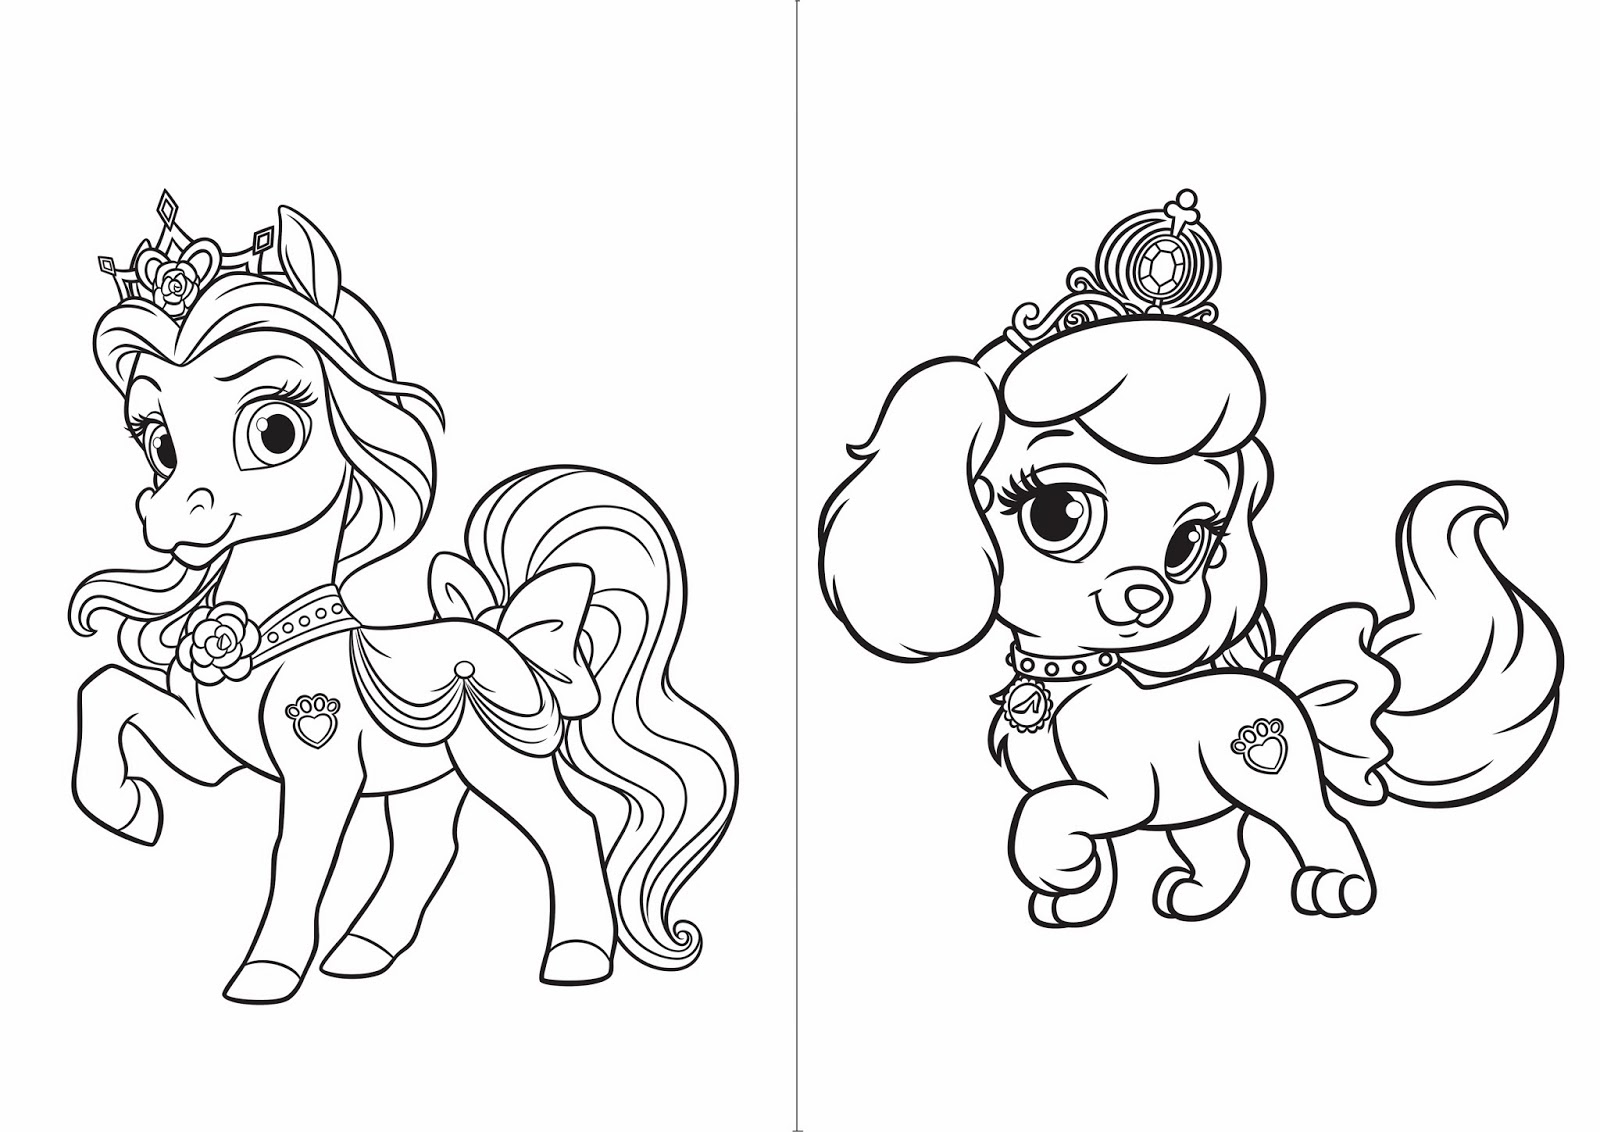 Palace Pet: Free Printable Coloring Book. | Oh My Activities for Kids!